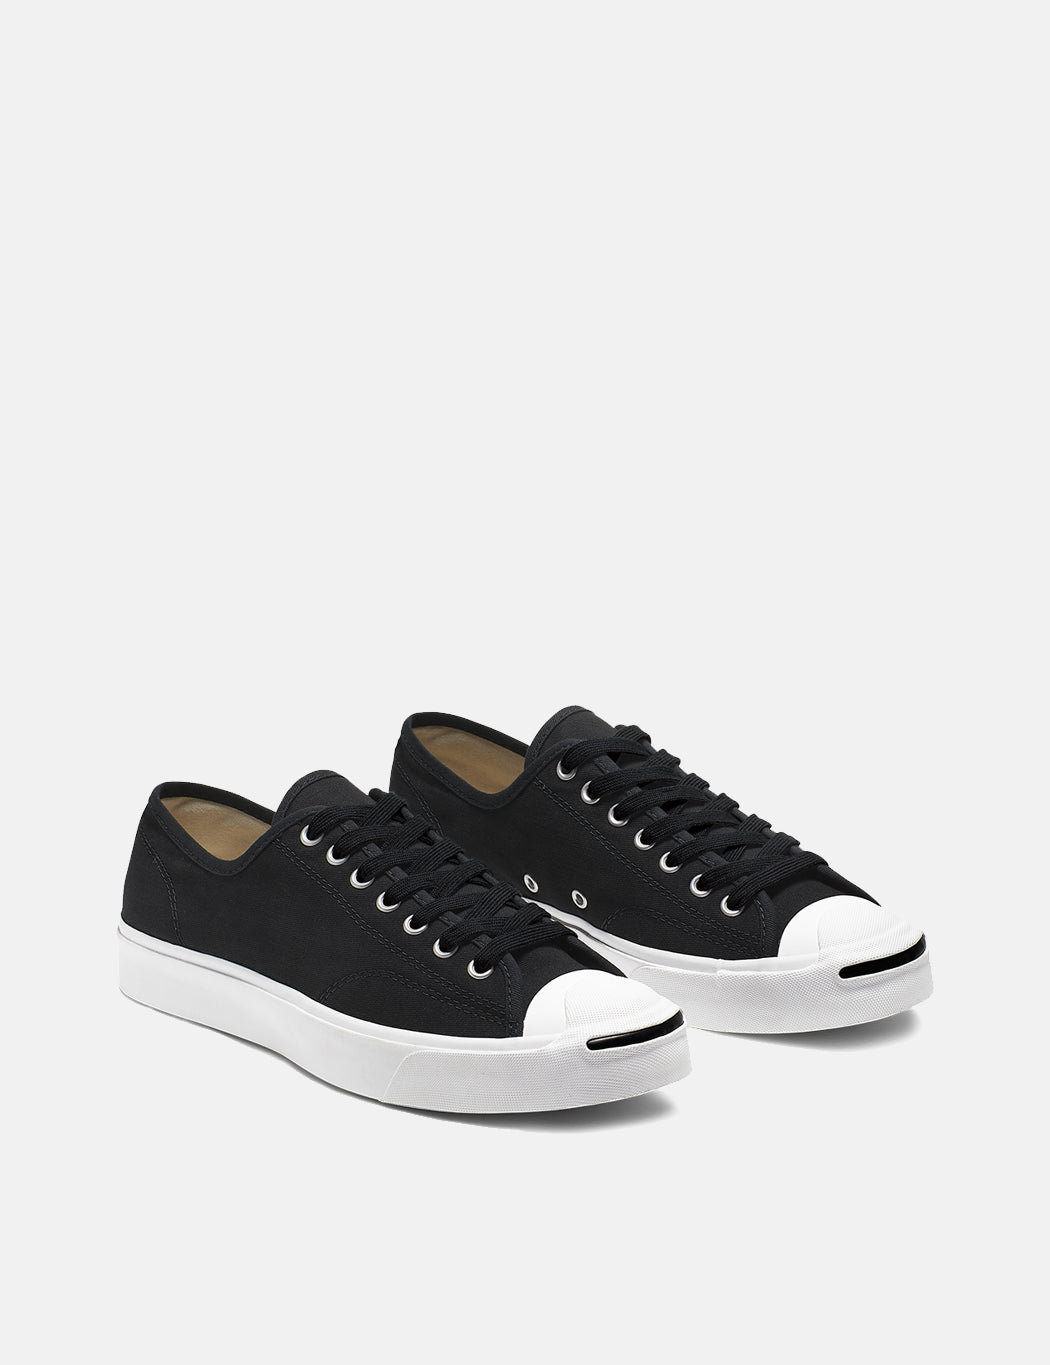 Converse Jack Purcell 164056C (Canvas) - Black/White | URBAN EXCESS